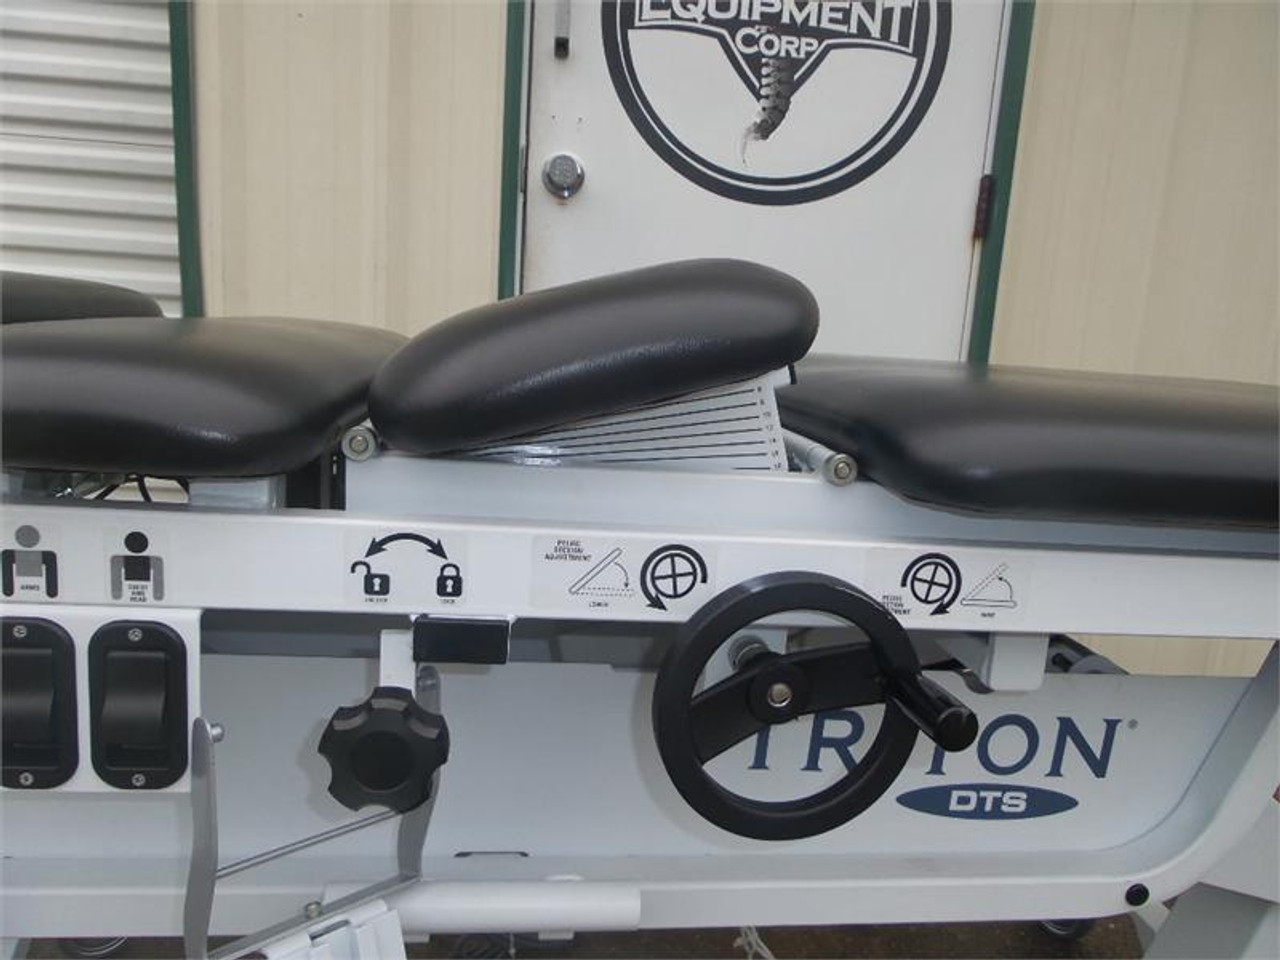 Used Chattanooga Dts 600 Decompression table